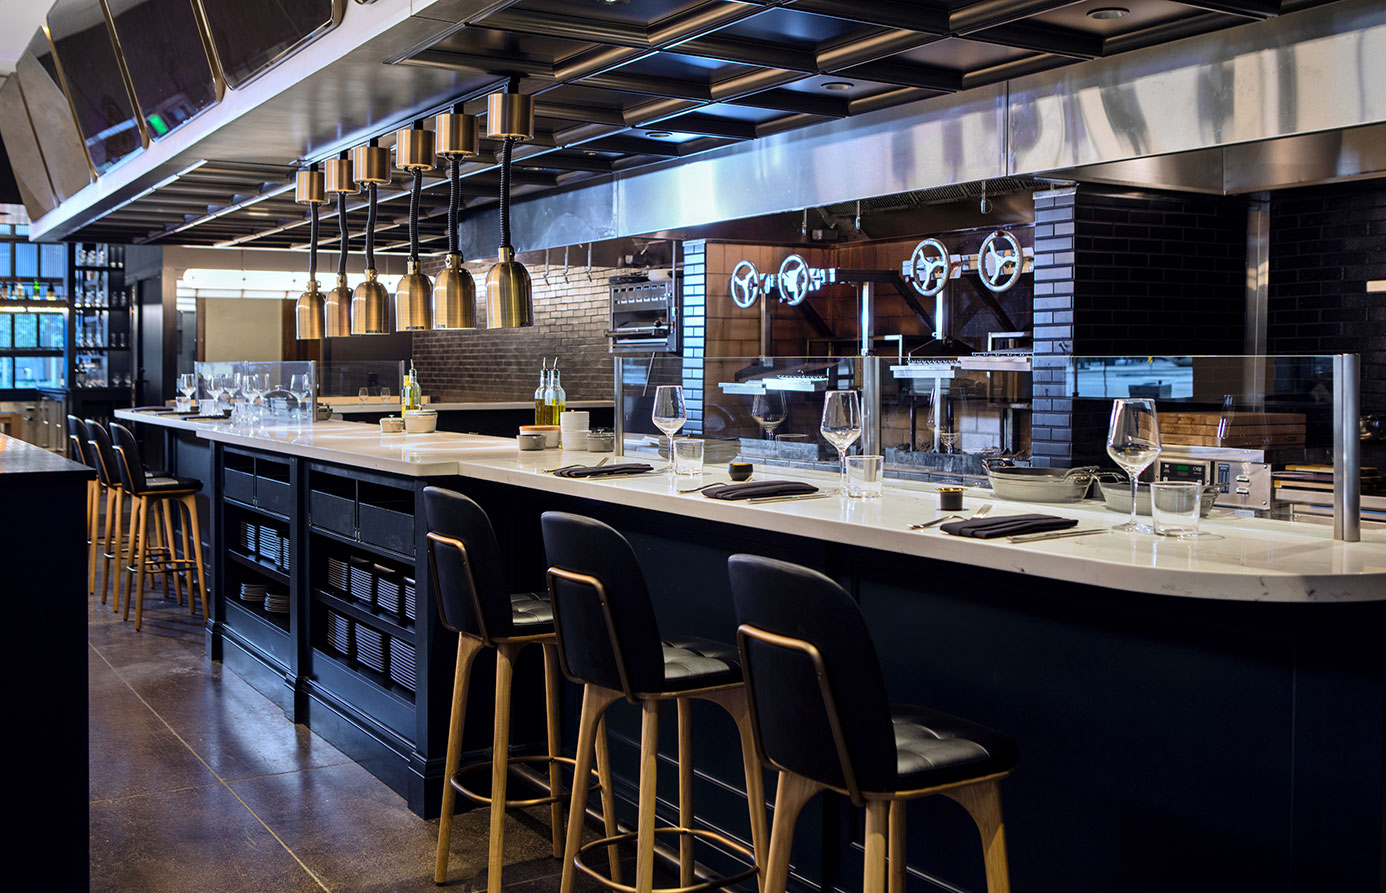 kimpton denver citizen rail restaurant open kitchen seating